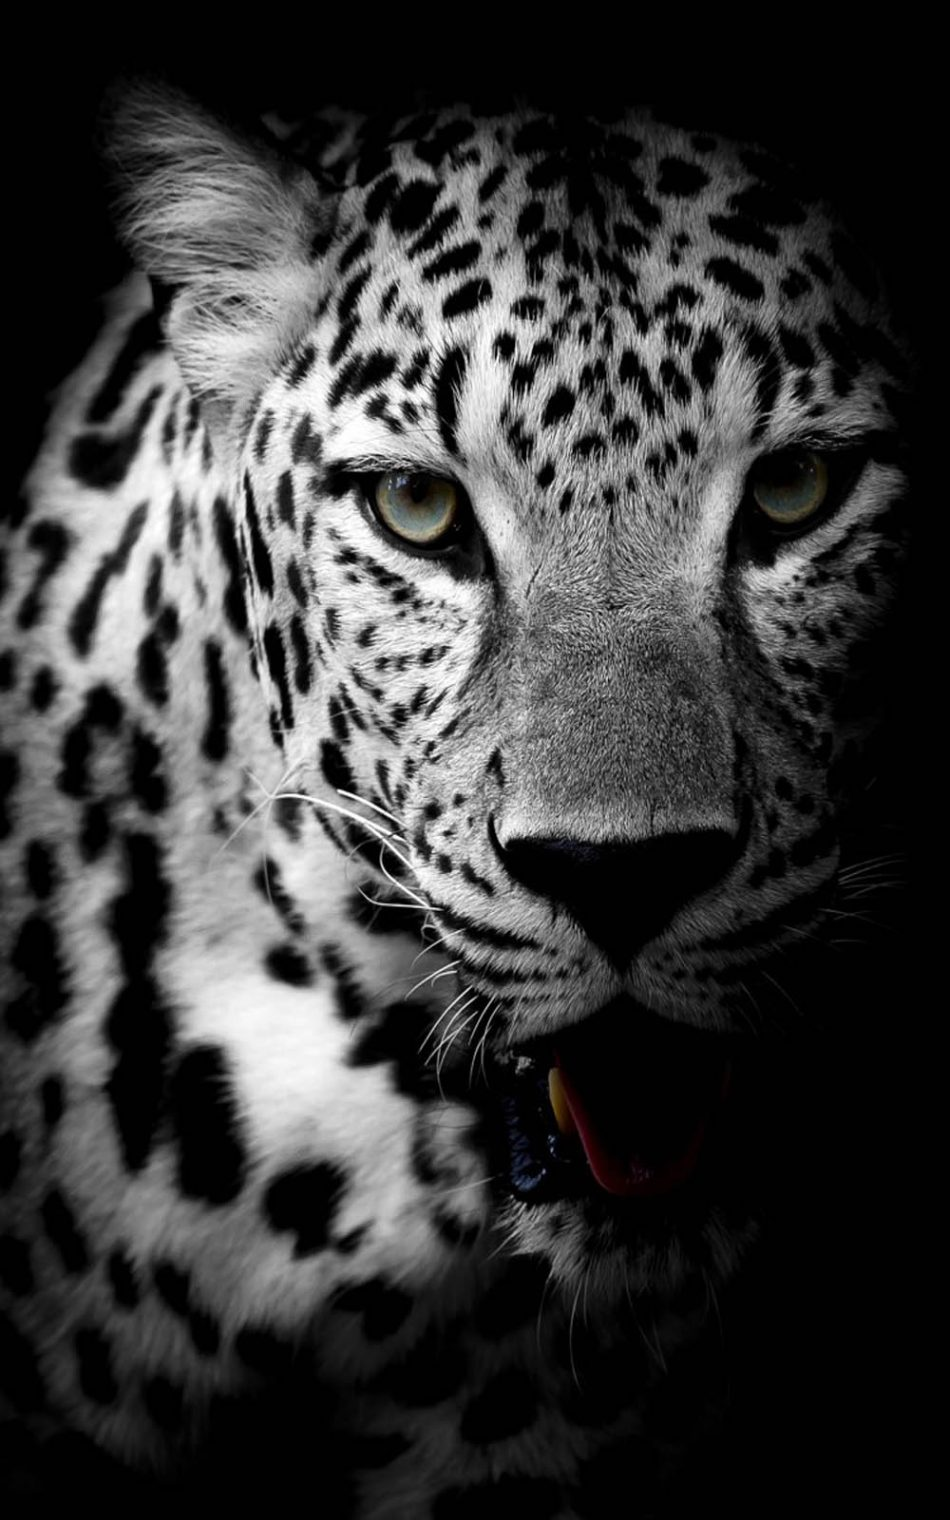 Leopard Black White 4k Ultra Hd Mobile Wallpaper